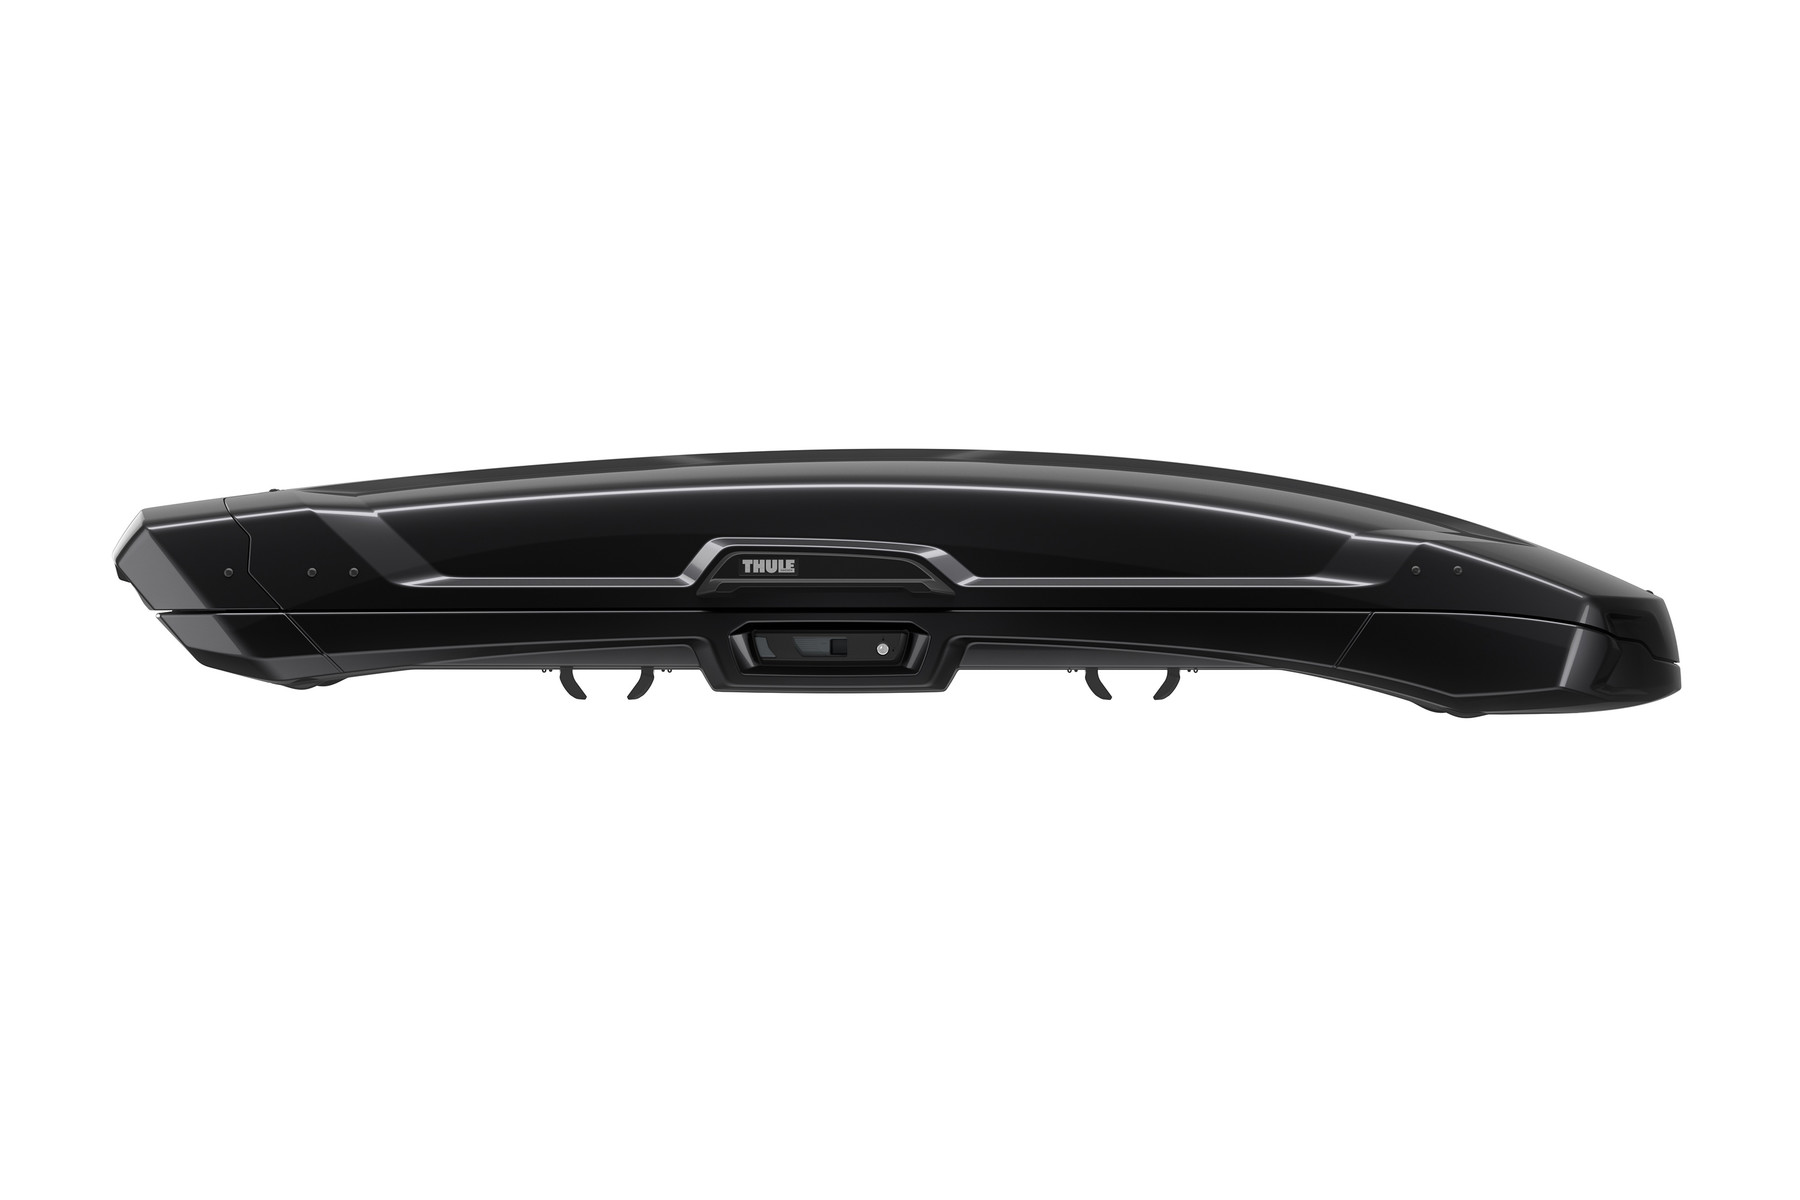 Thule Vector Alpine Black 6135B